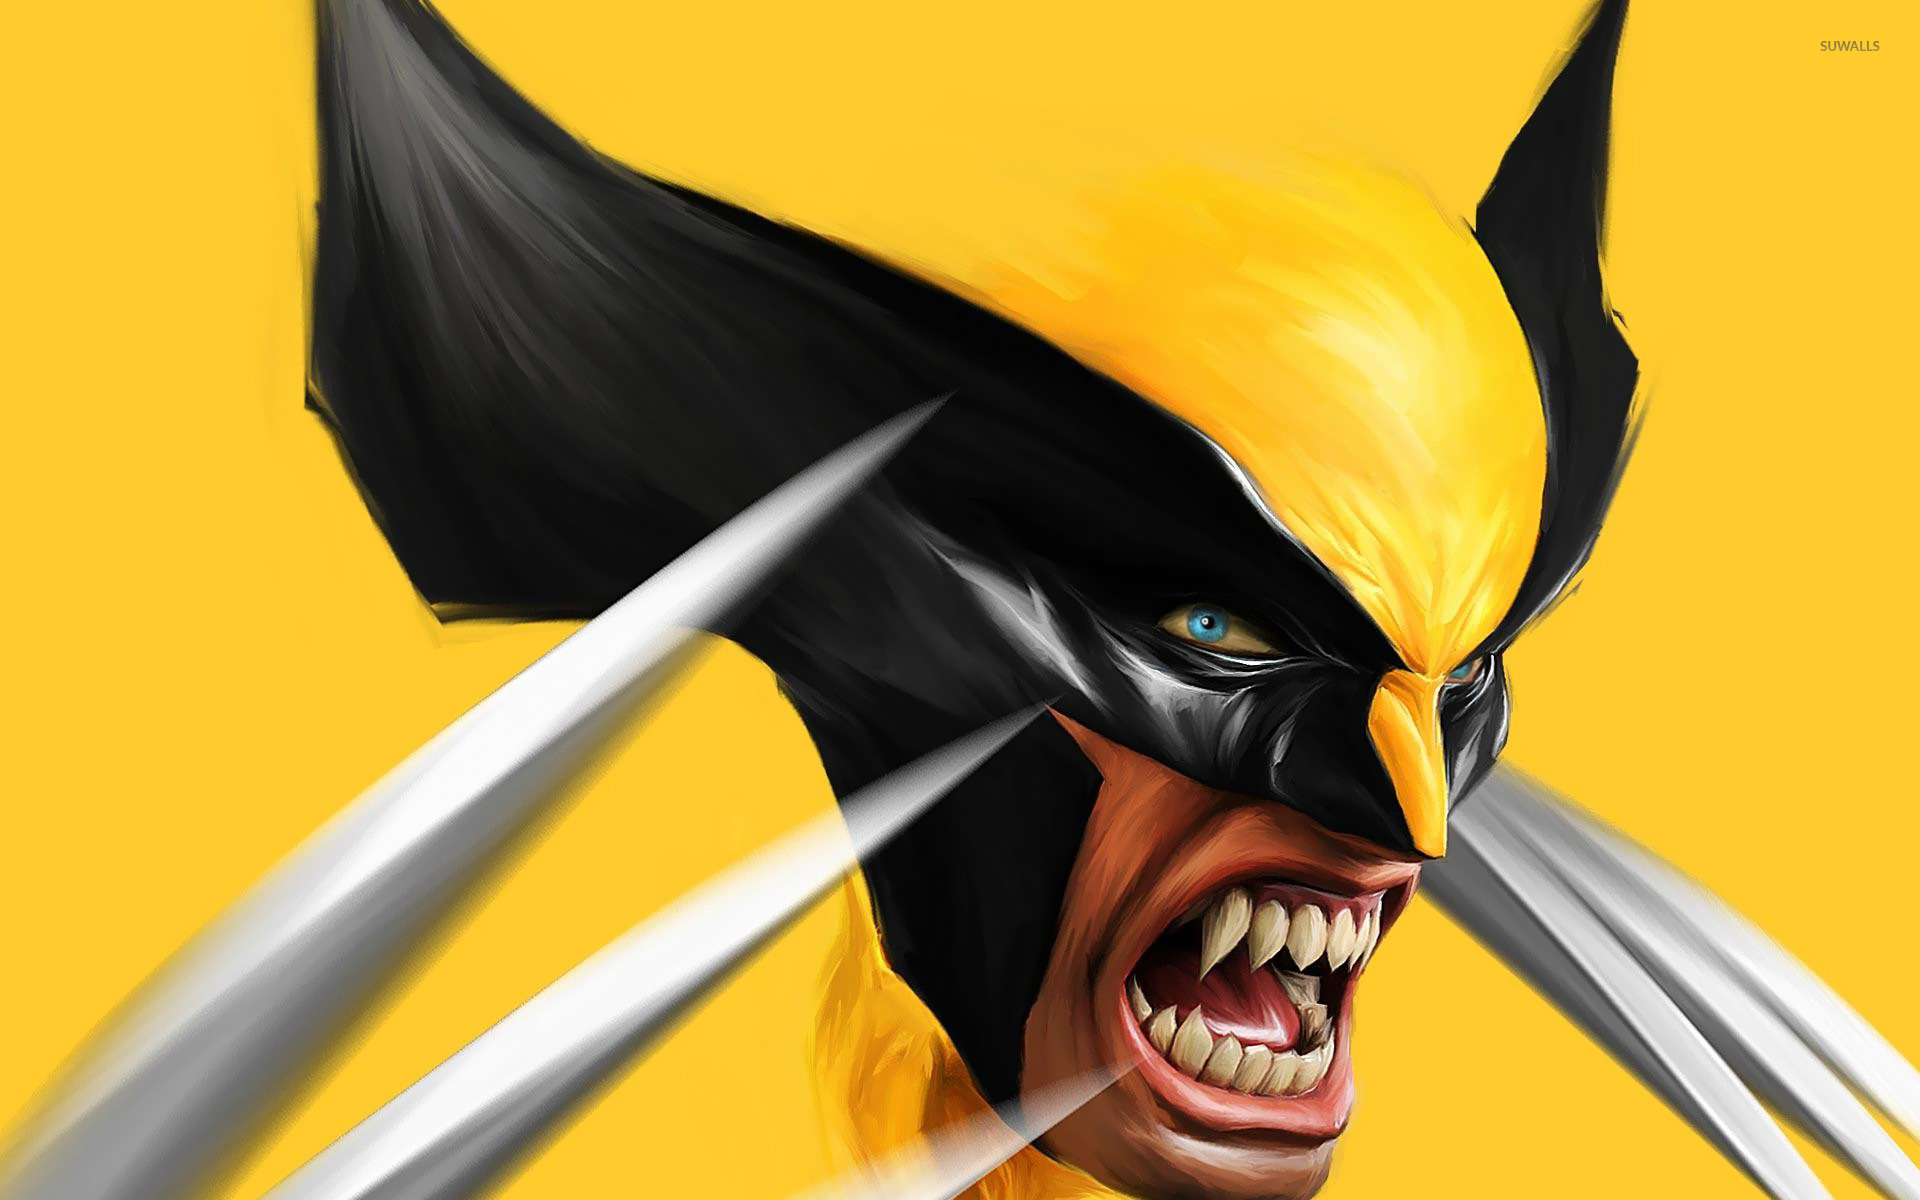 Beautiful Wallpaper Marvel Wolverine - wolverine-16112-1920x1200  Snapshot_1004355.jpg